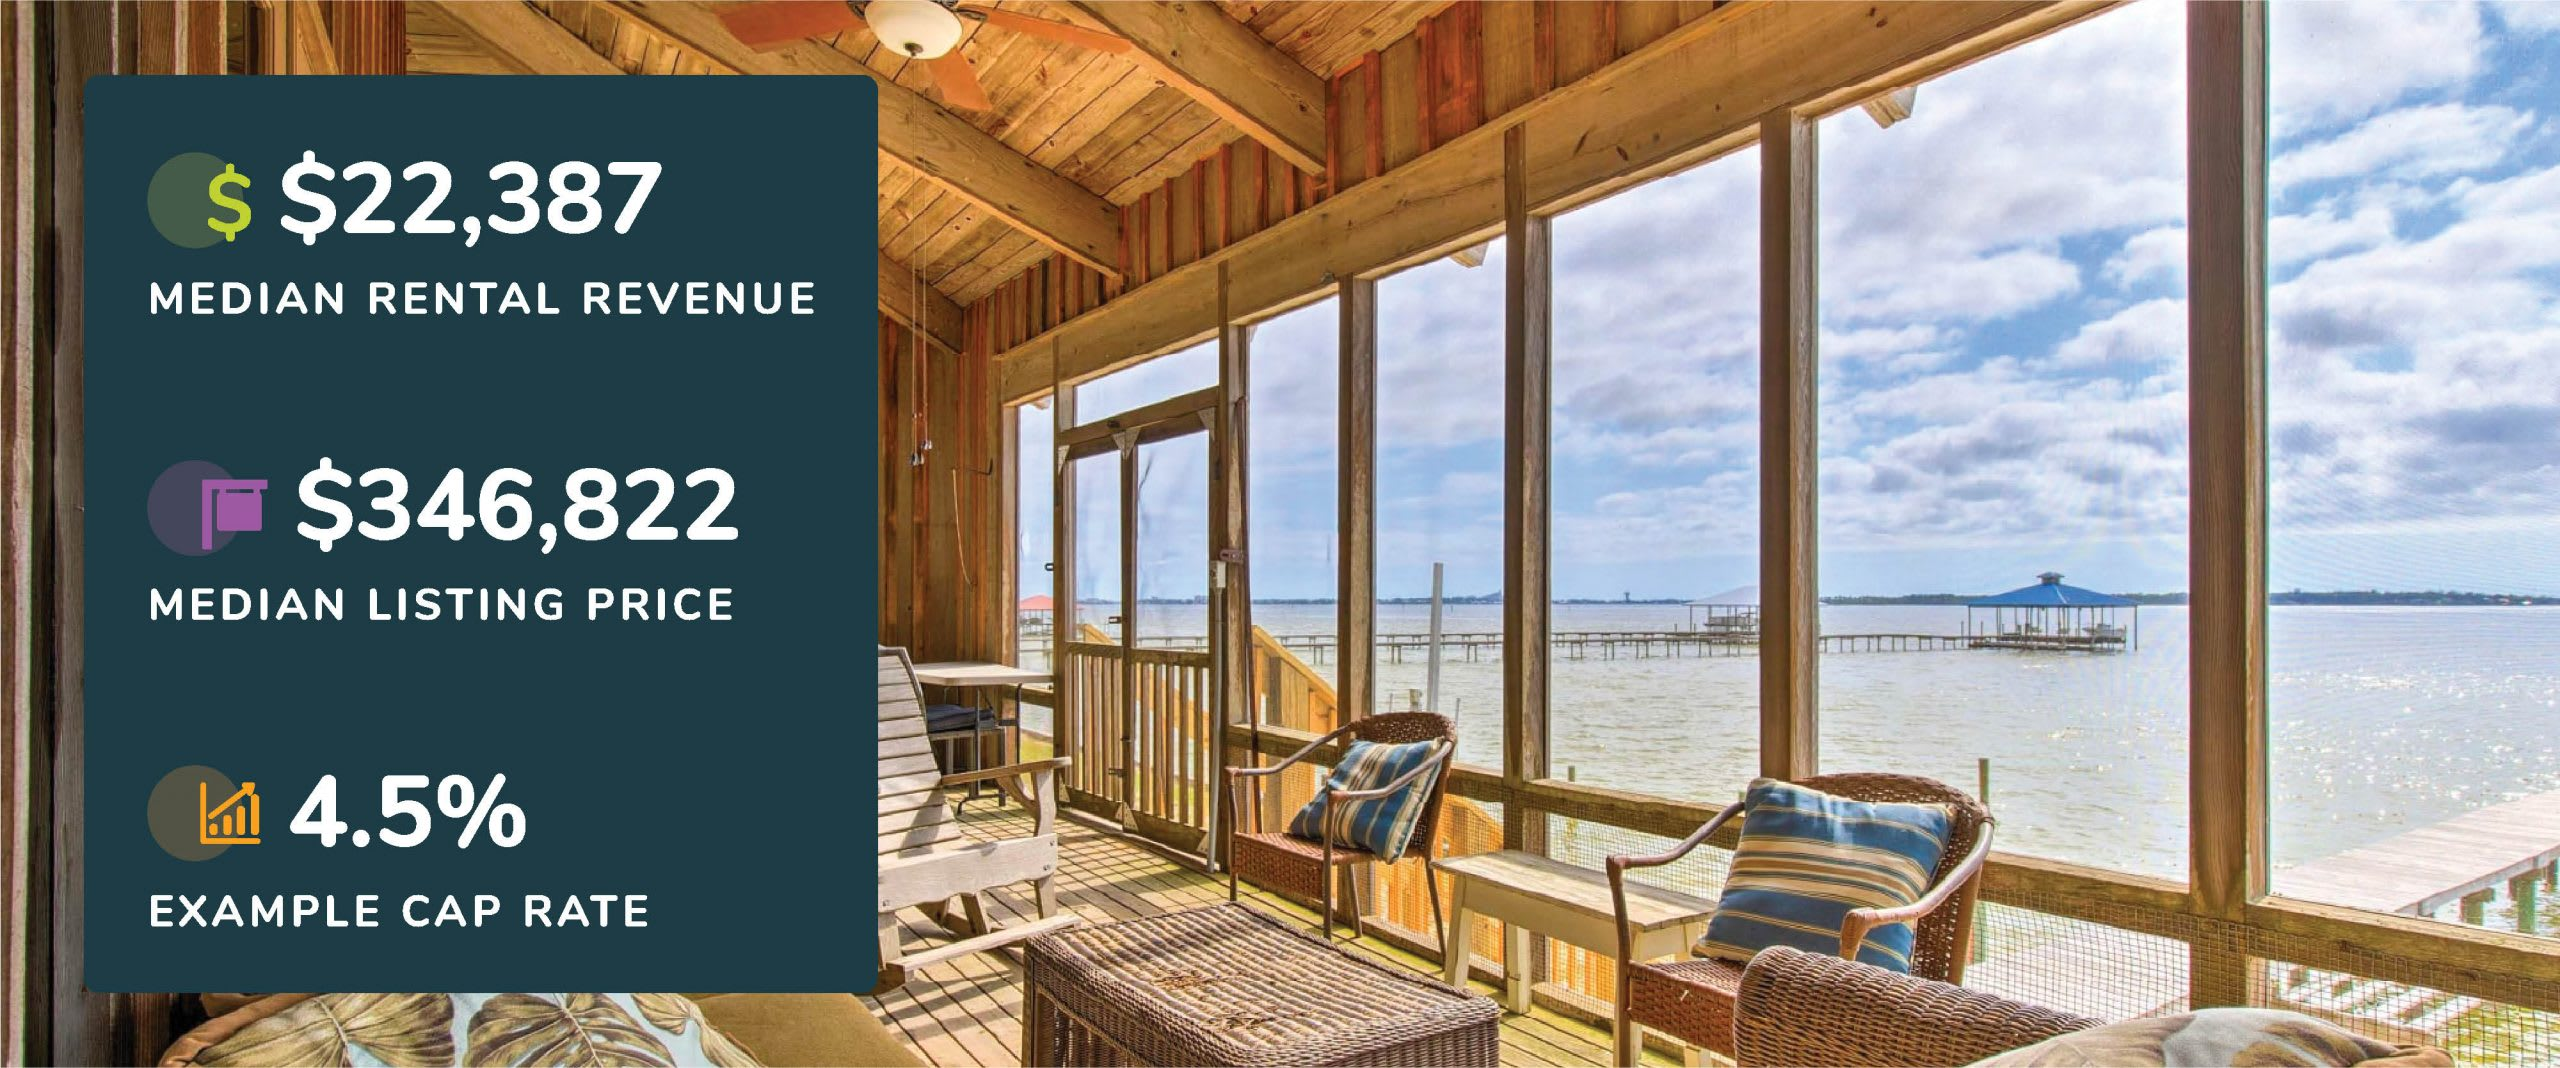 Graphic showing Gulf Shores, Alabama median rental revenue, listing price, and example cap rate with a picture of a porch with waterfront view